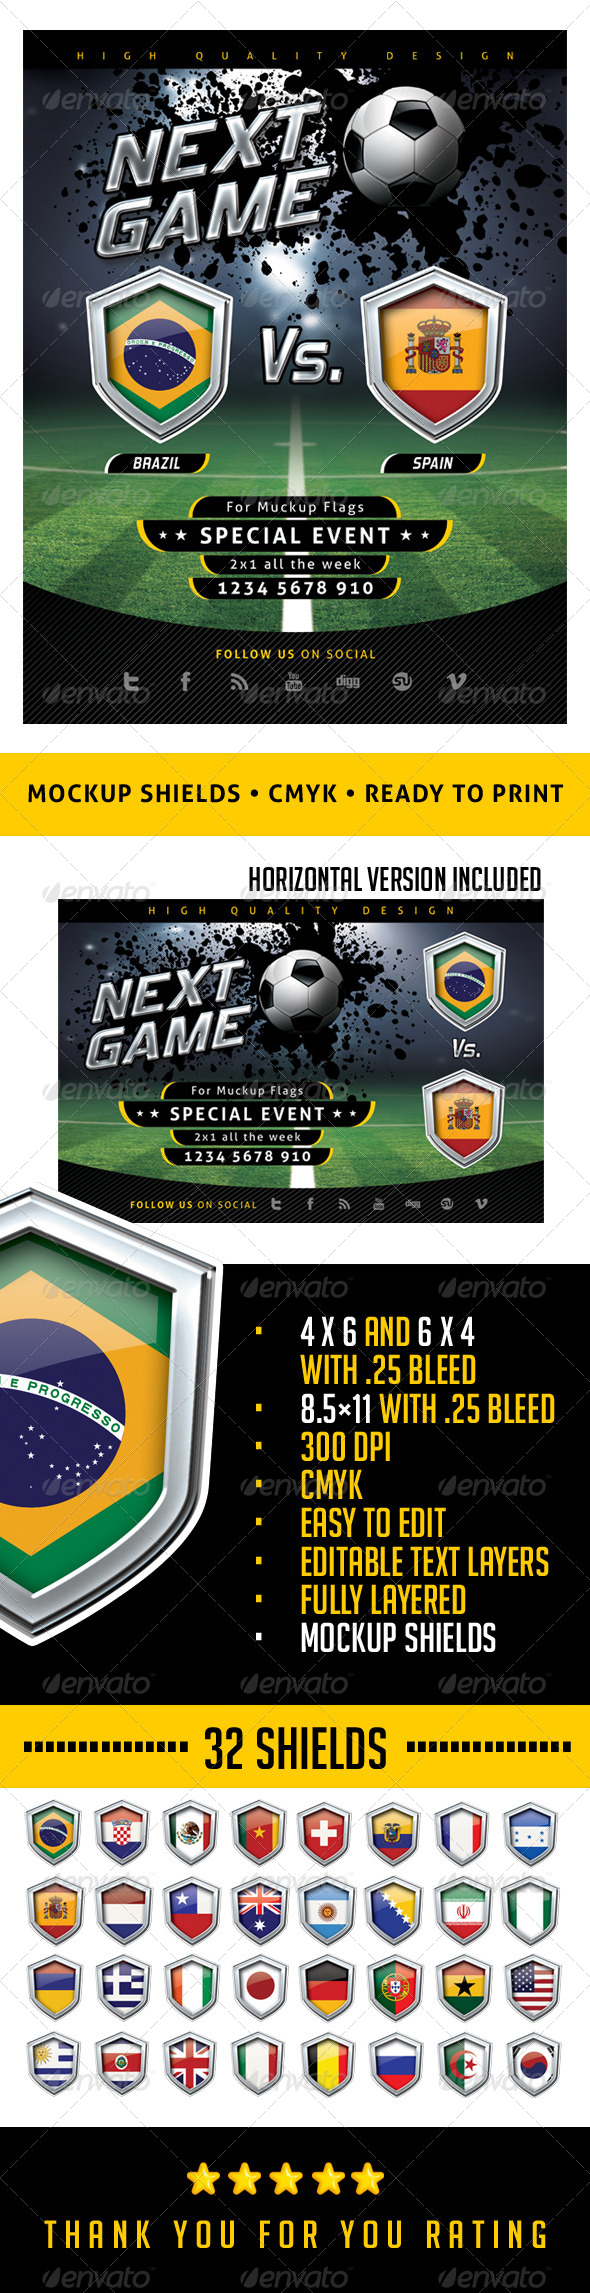 Flyer Soccer Template with Mockup Shields - Sports Events